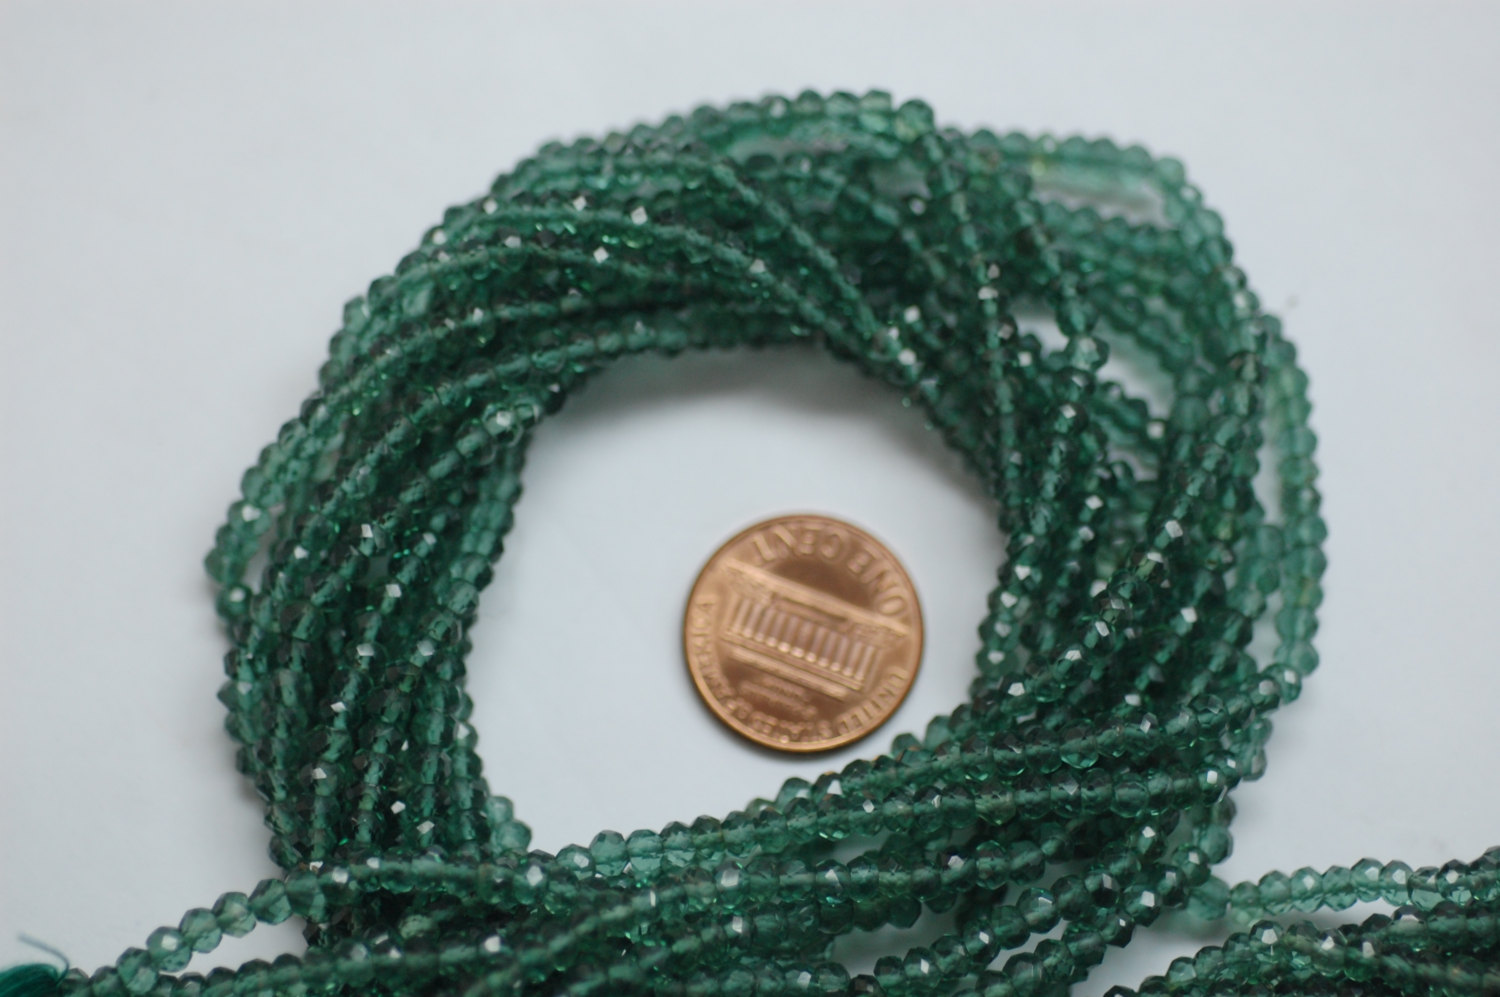 Green Hydro Quartz Rondelle Faceted